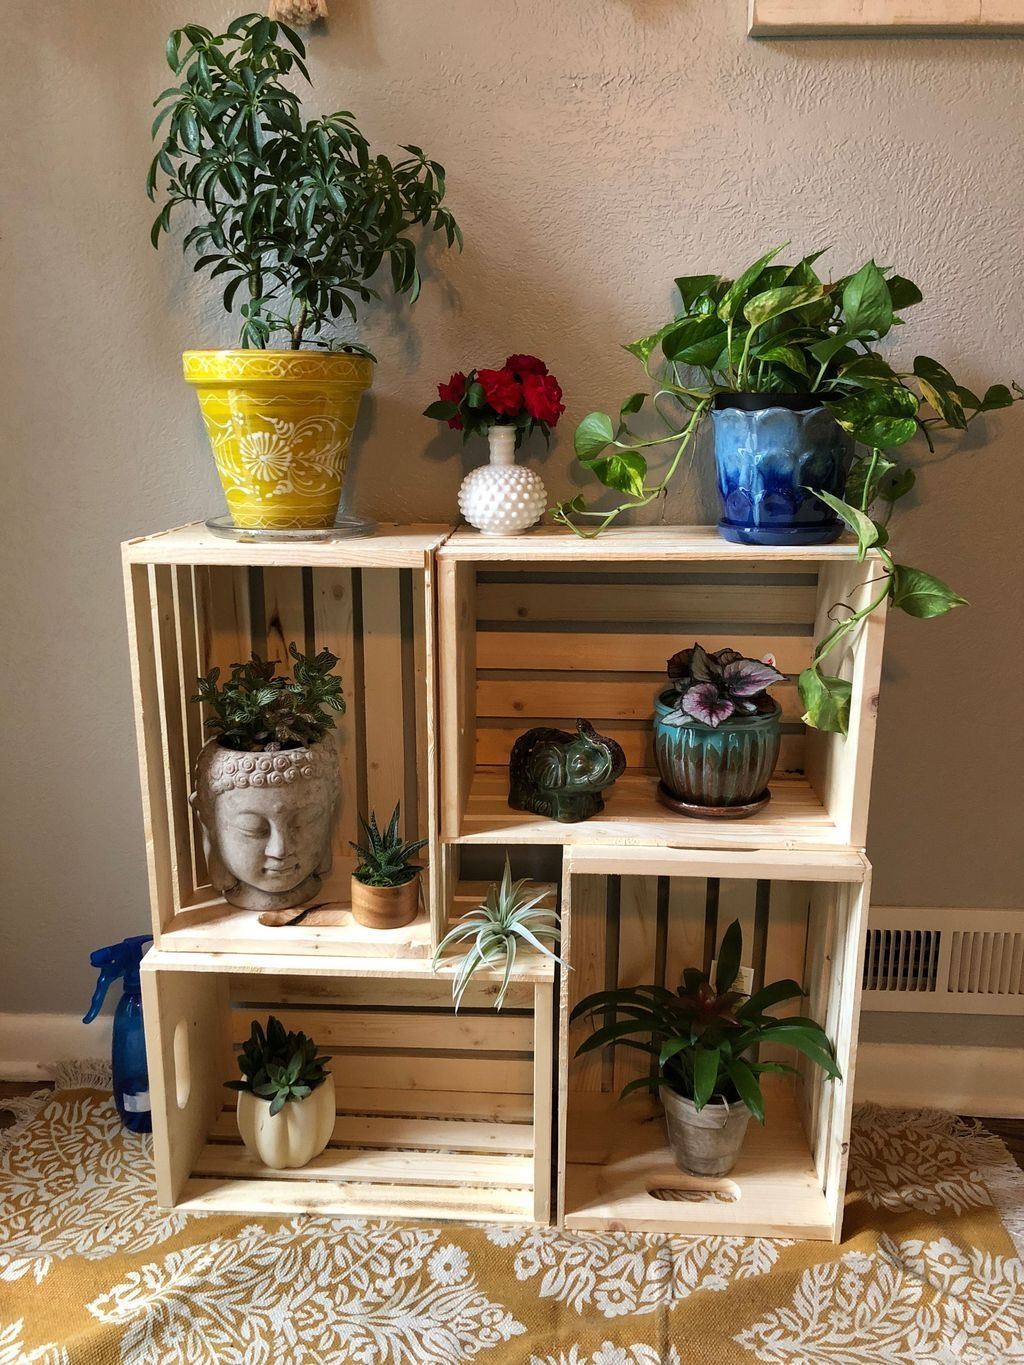 DIY PLANT STAND IDEAS FOR AN OUTDOOR AND INDOOR DECORATION  Unique Diy Plant Stand Ideas To Fill Your Home With Greenery